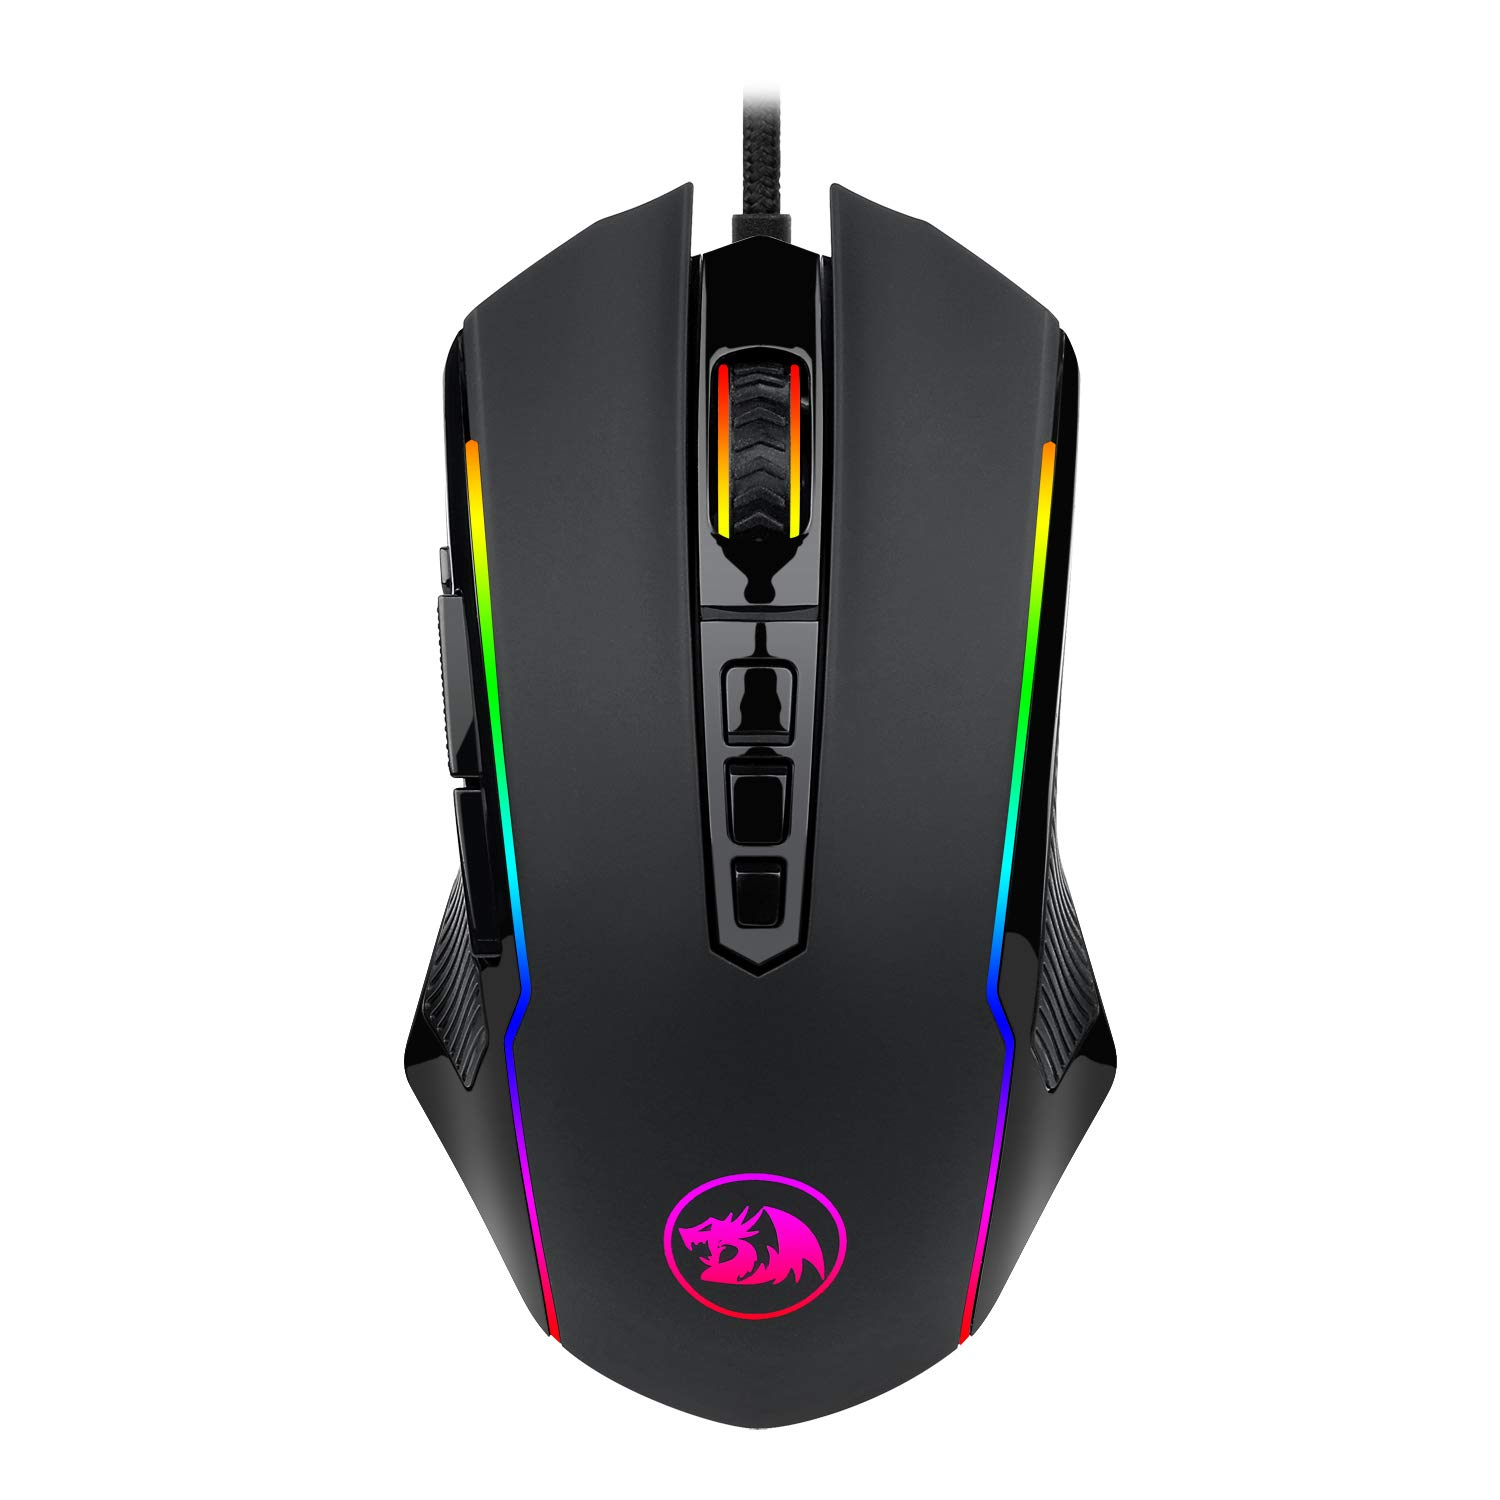 Redragon M910 Ranger Chroma Gaming Mouse with 16.8 Million RGB Color Backlit, Comfortable Grip, 9 Programmable Buttons, up to 12400 DPI User Adjustable